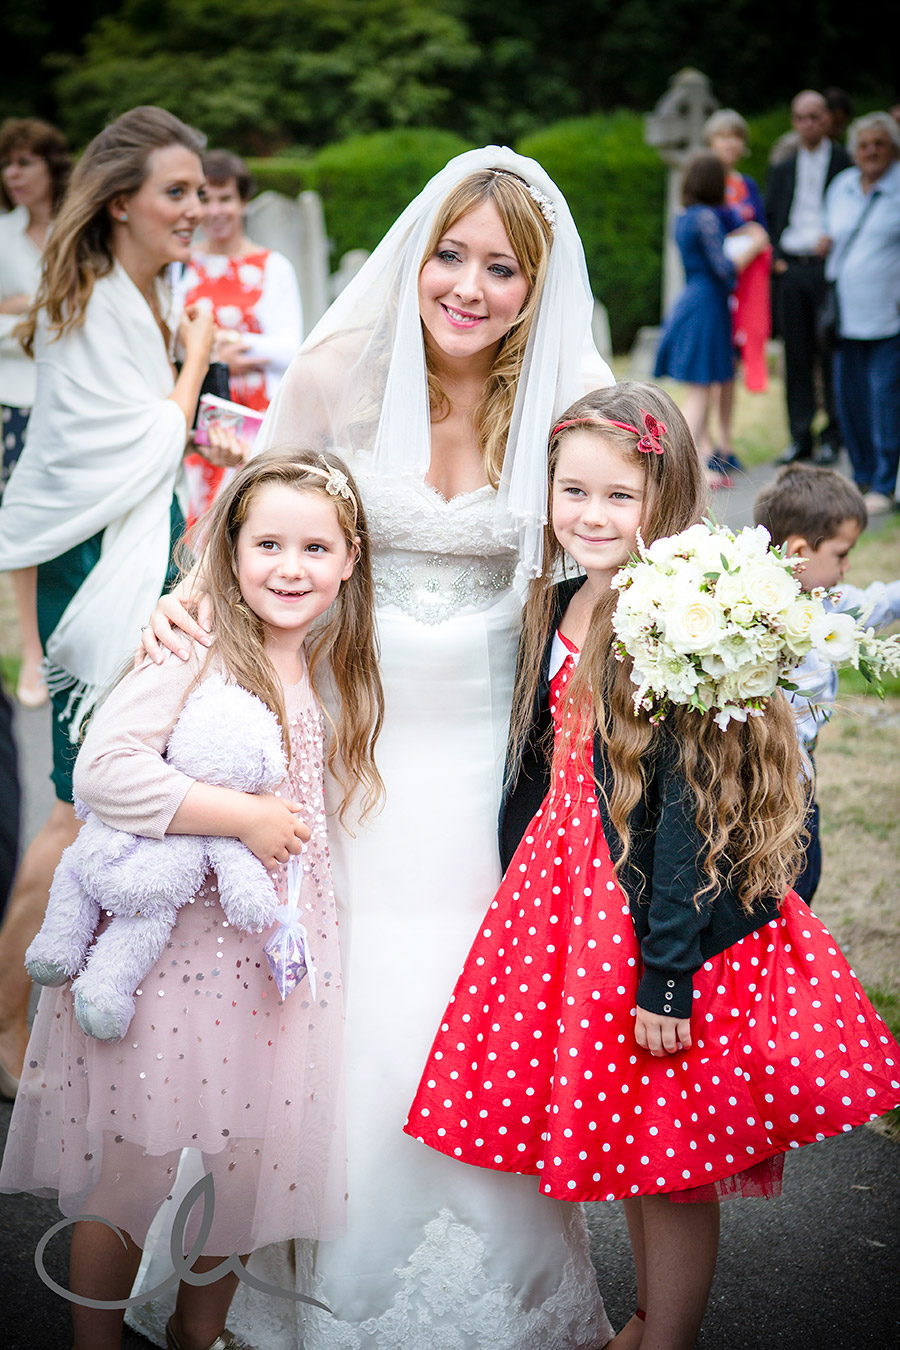 Sundridge-Park-Manor-Wedding-Photographer-40